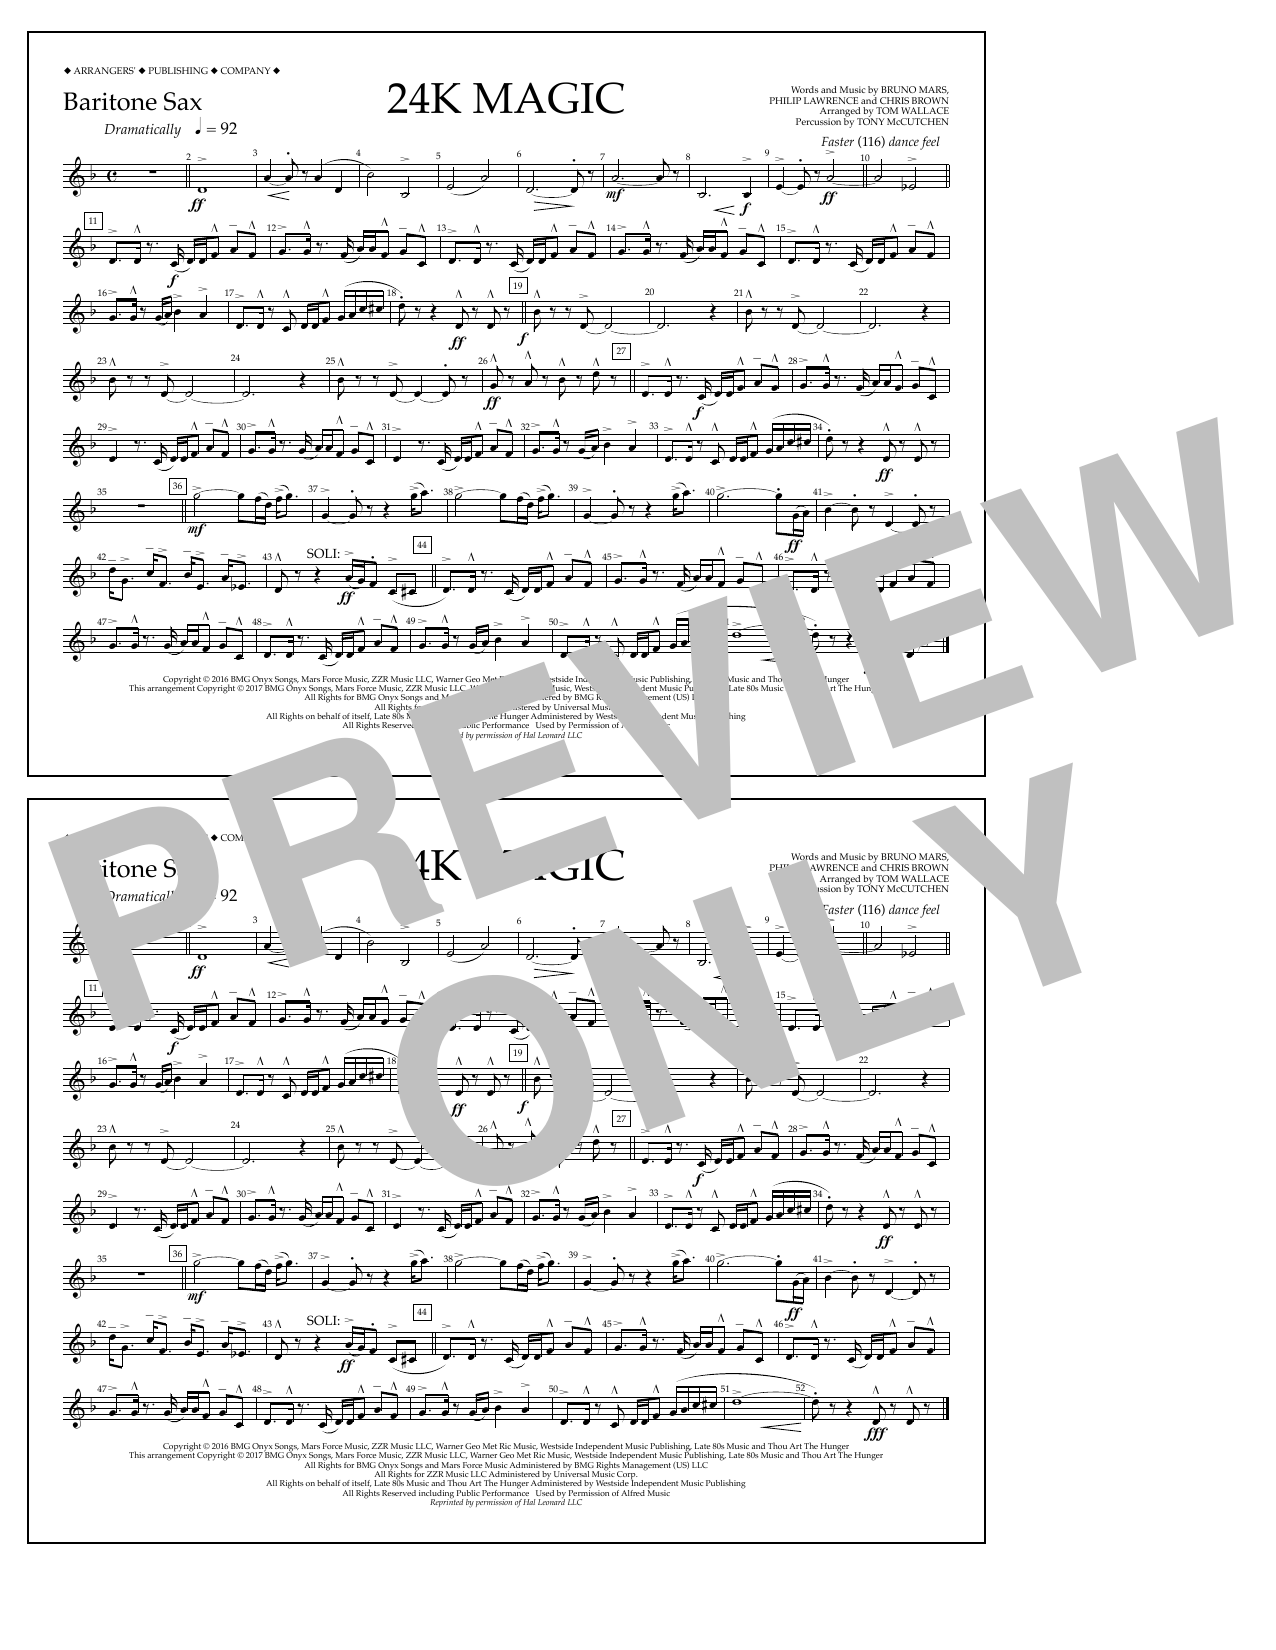 24K Magic - Baritone Sax Sheet Music